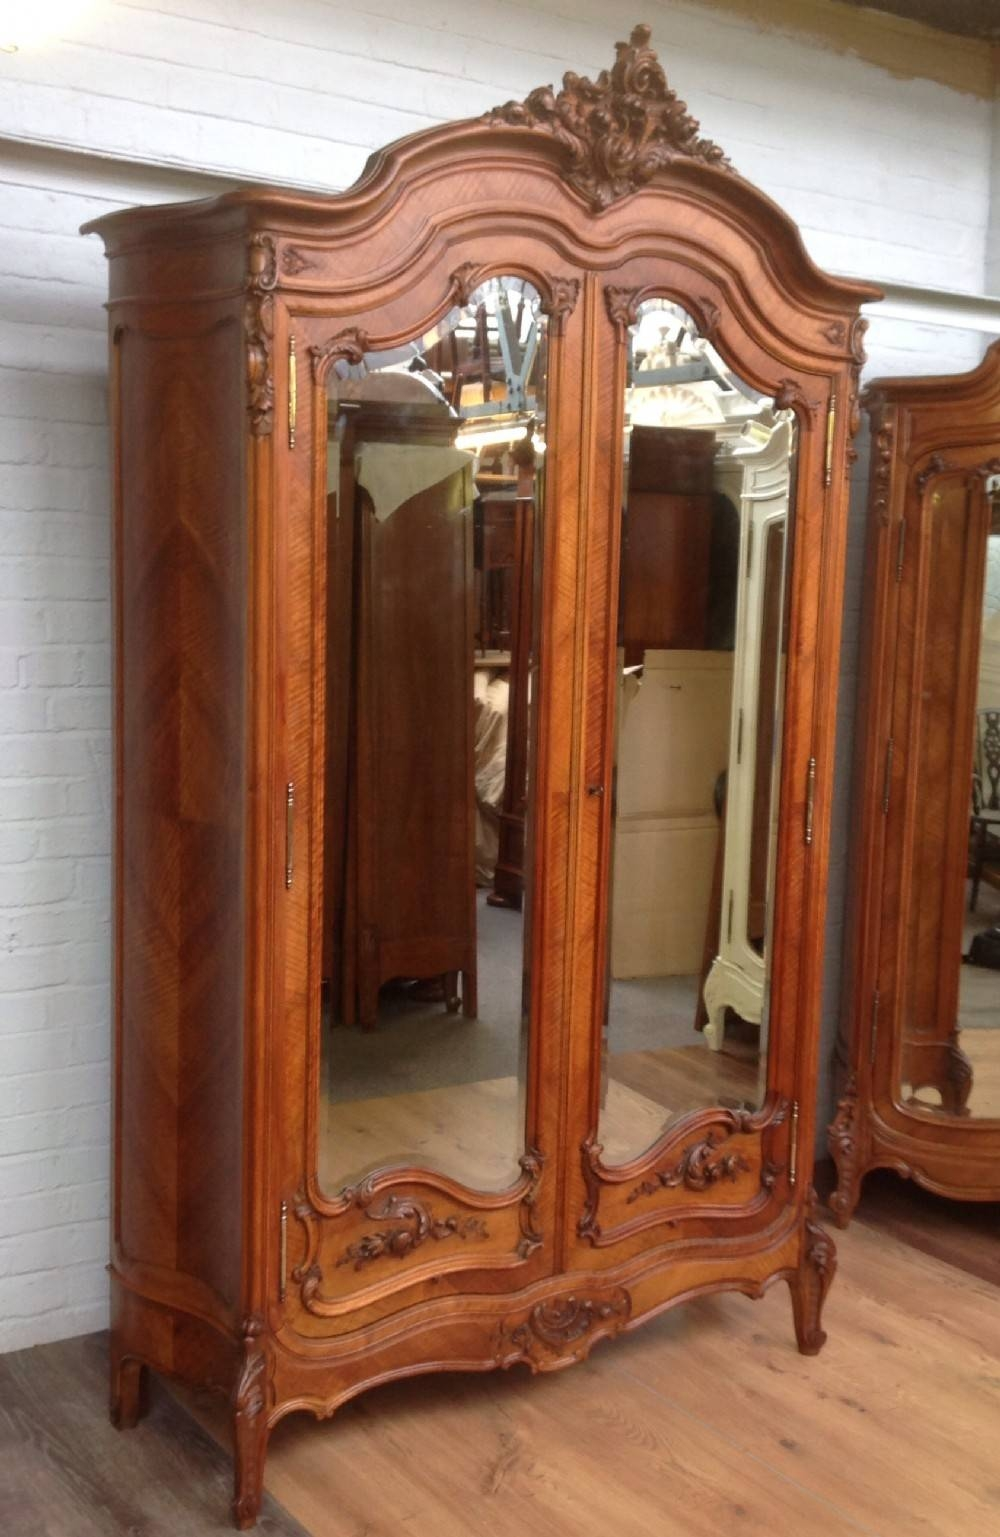 Antique French Walnut Armoire With Carved Doors. | 287475 intended for Vintage French Wardrobes (Image 3 of 15)